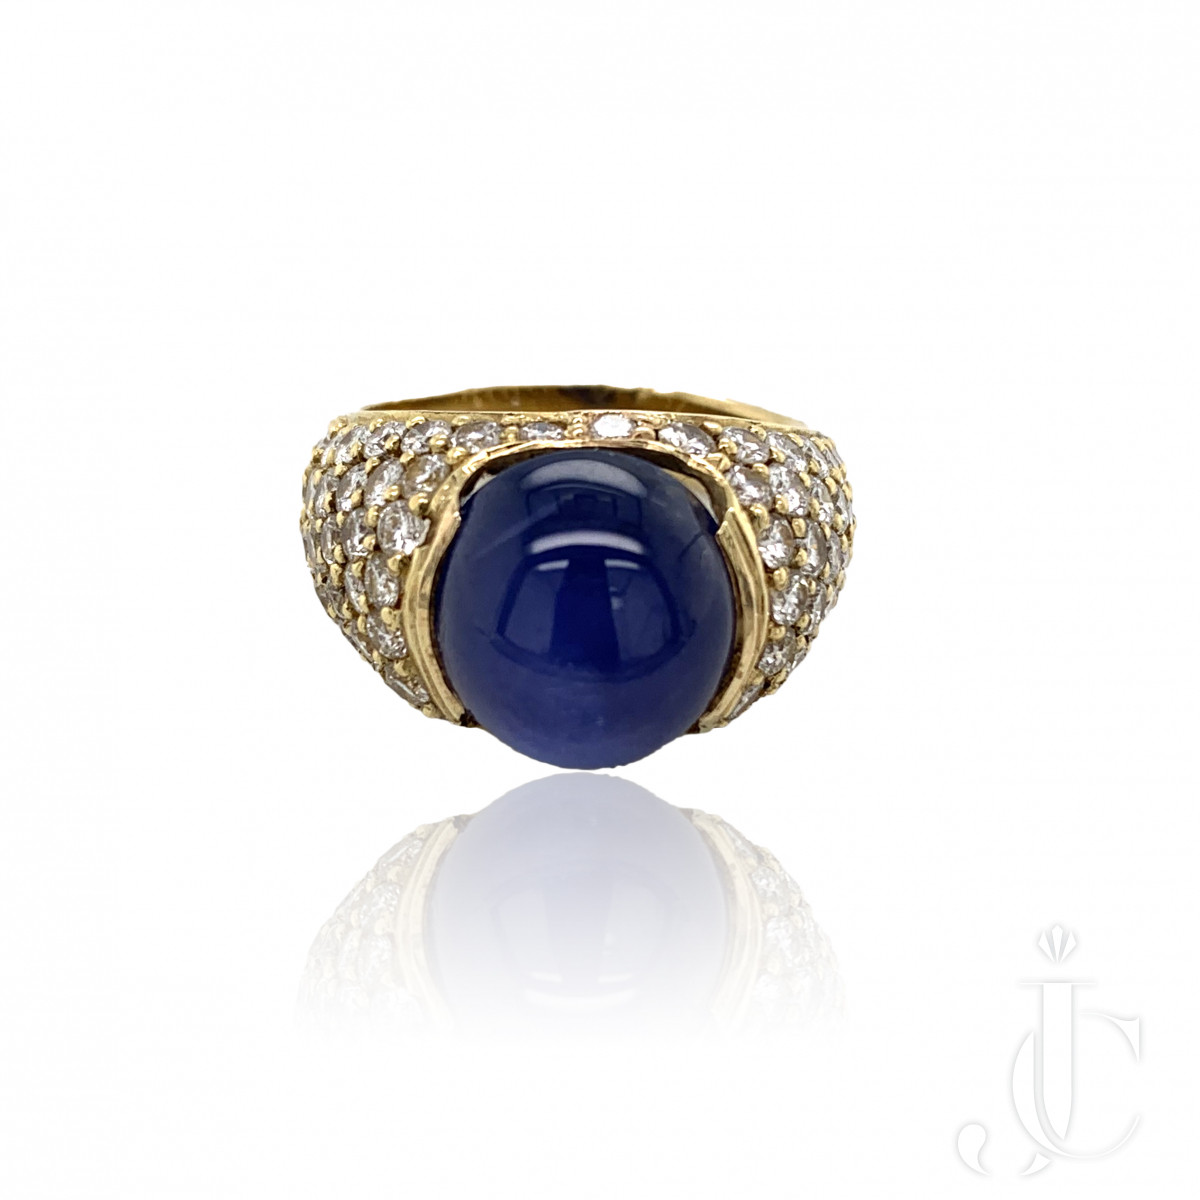 STAR SAPPHIRE RING WITH PAVE DIAMONDS